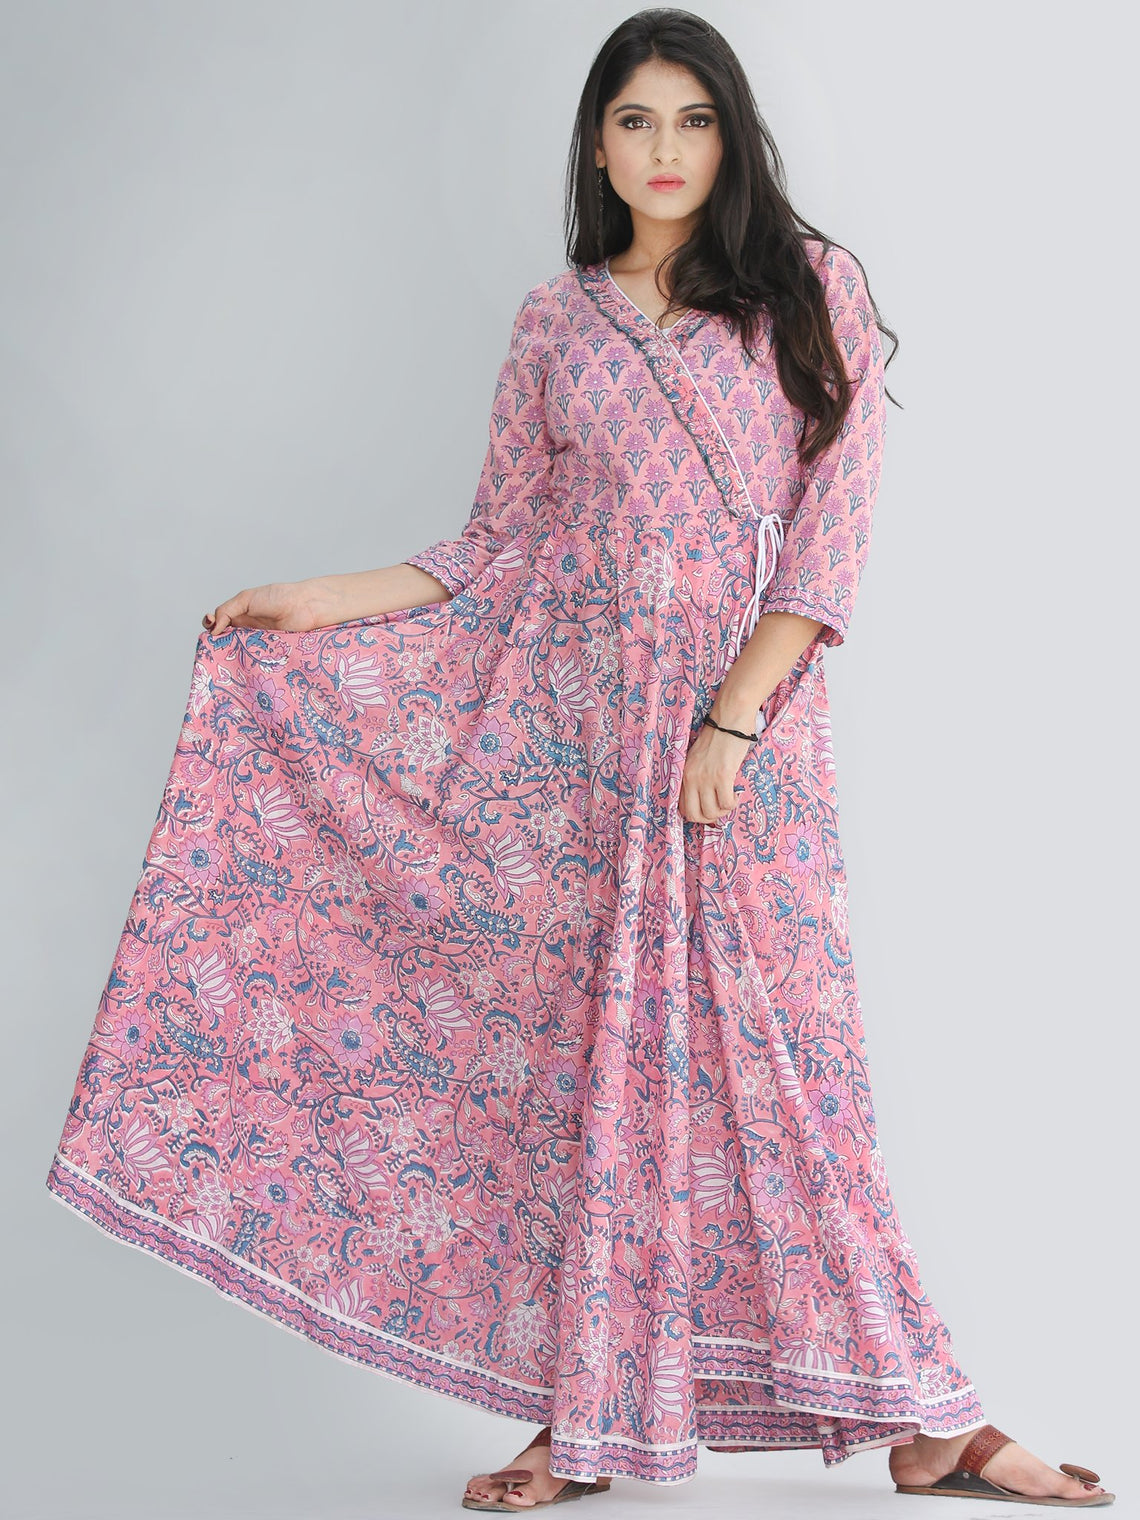 Gulzar Turfa - Hand Block Printed Angrakha Long Dress - D411F2232